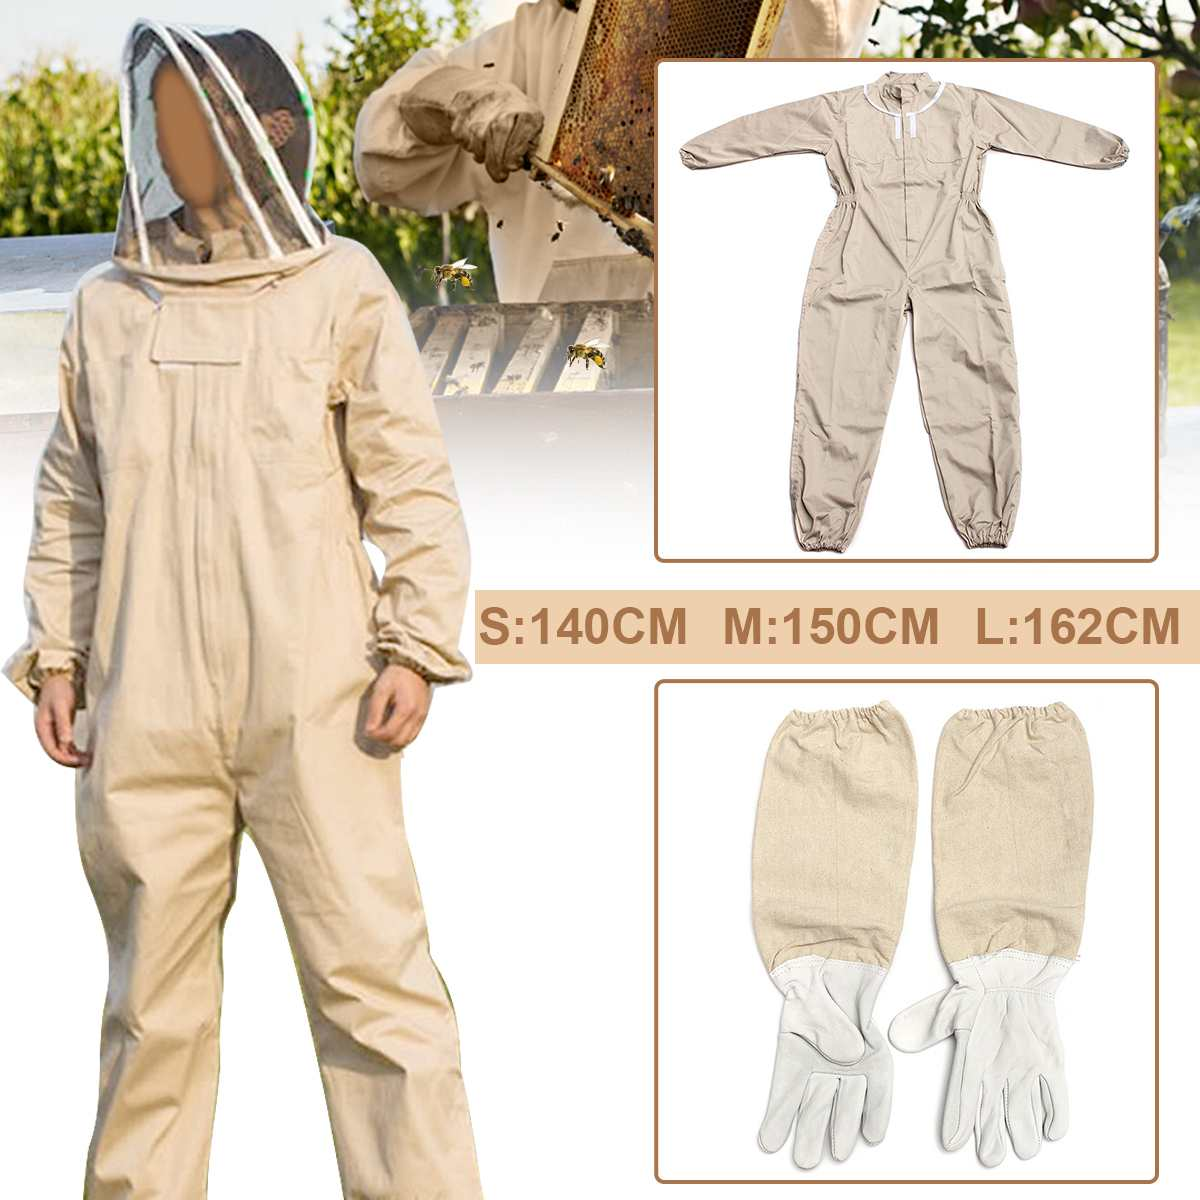 NEW Unisex Details About Cotton Beekeeper Bee Suit Smock + Beekeeping Protective Goatskin Gloves Gray+White Safely Clothes S M L